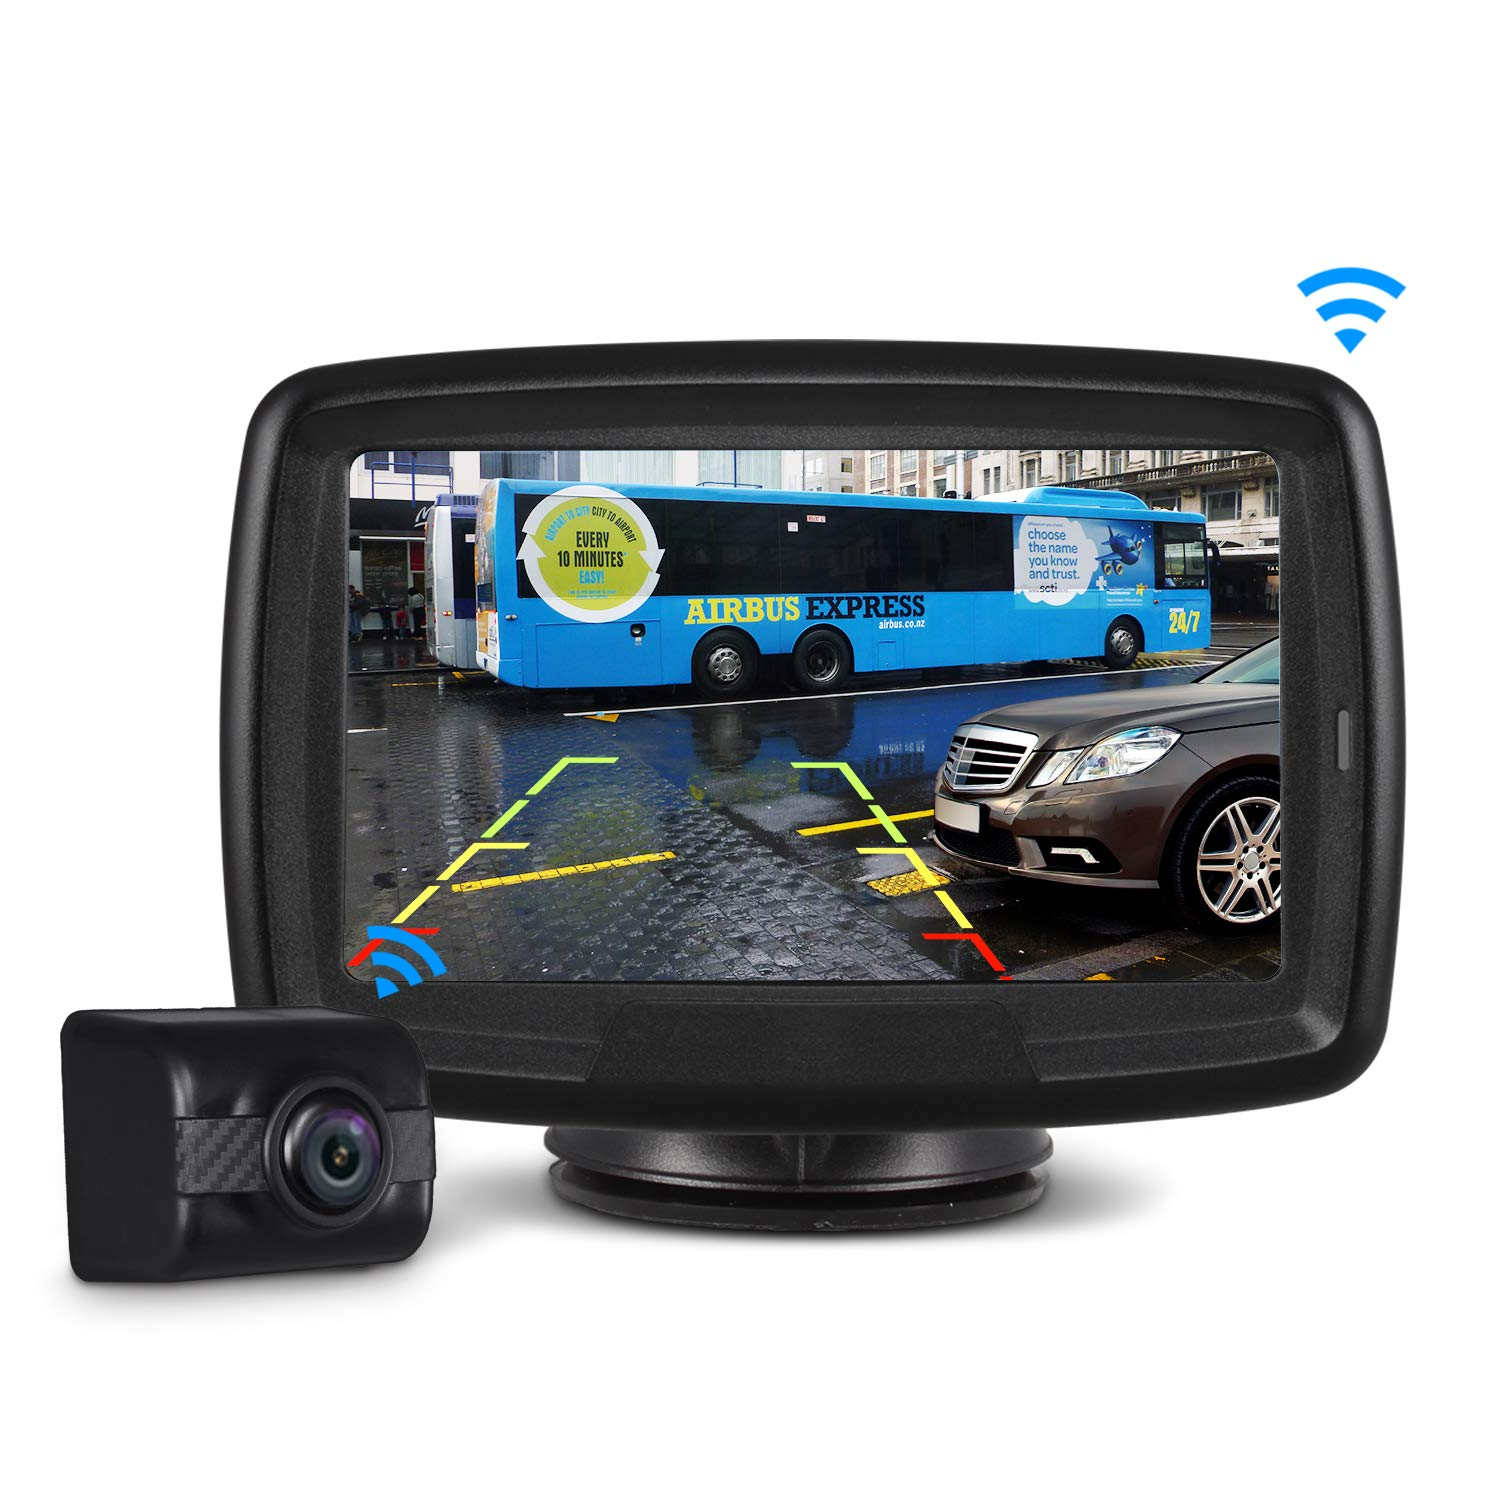 AUTO-VOX Digital Wireless Backup Camera and Monitor Kit TD-2, Stable Signal Reverse Camera Kit with Super Night Vision, IP68 Waterproof Rear View Camera for Truck, Minibus, Van, Trailer by AUTO-VOX